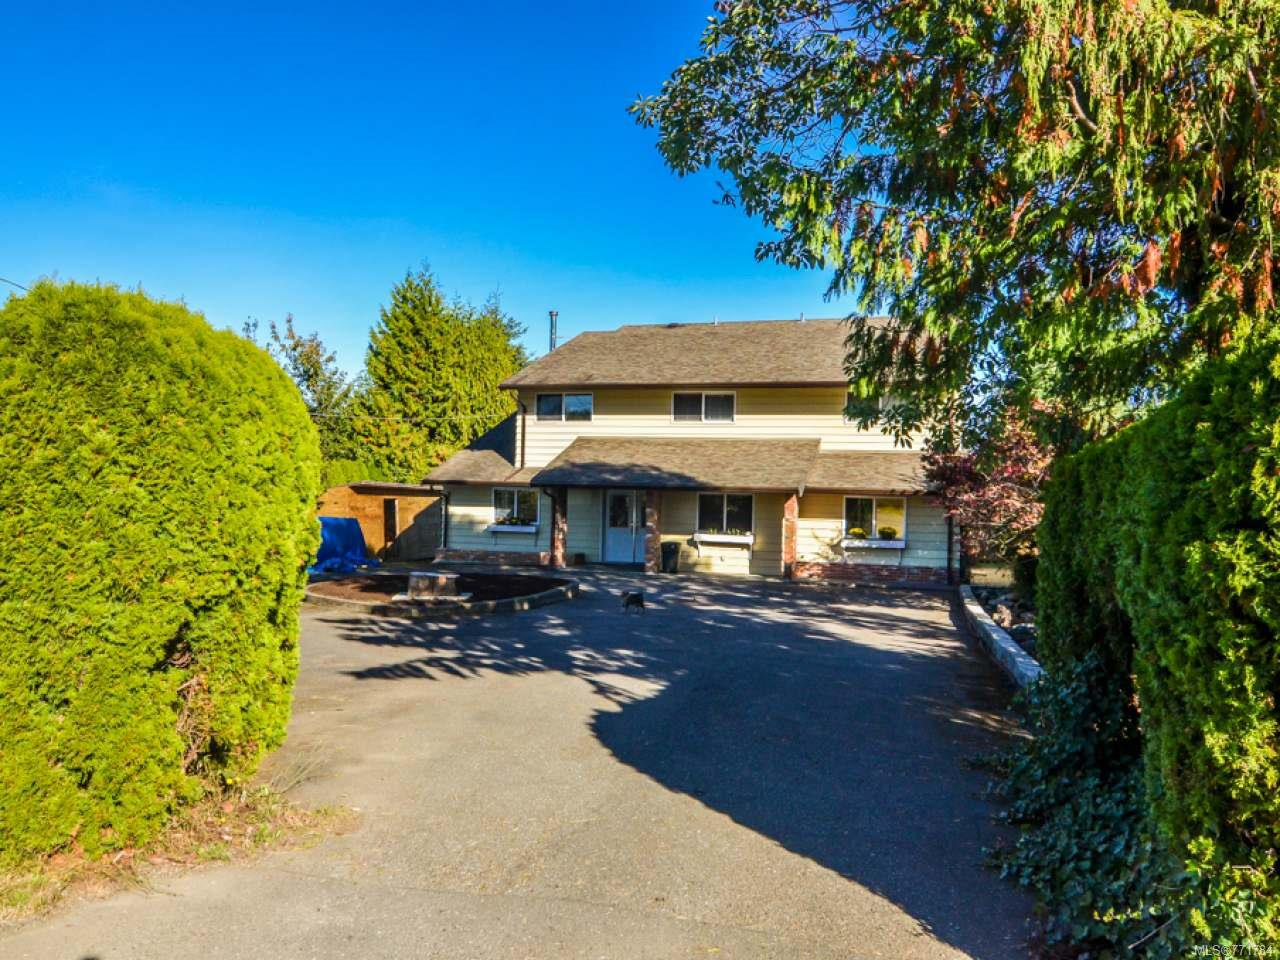 Photo 49: Photos: 3974 Dillman Rd in CAMPBELL RIVER: CR Campbell River South House for sale (Campbell River)  : MLS®# 771784